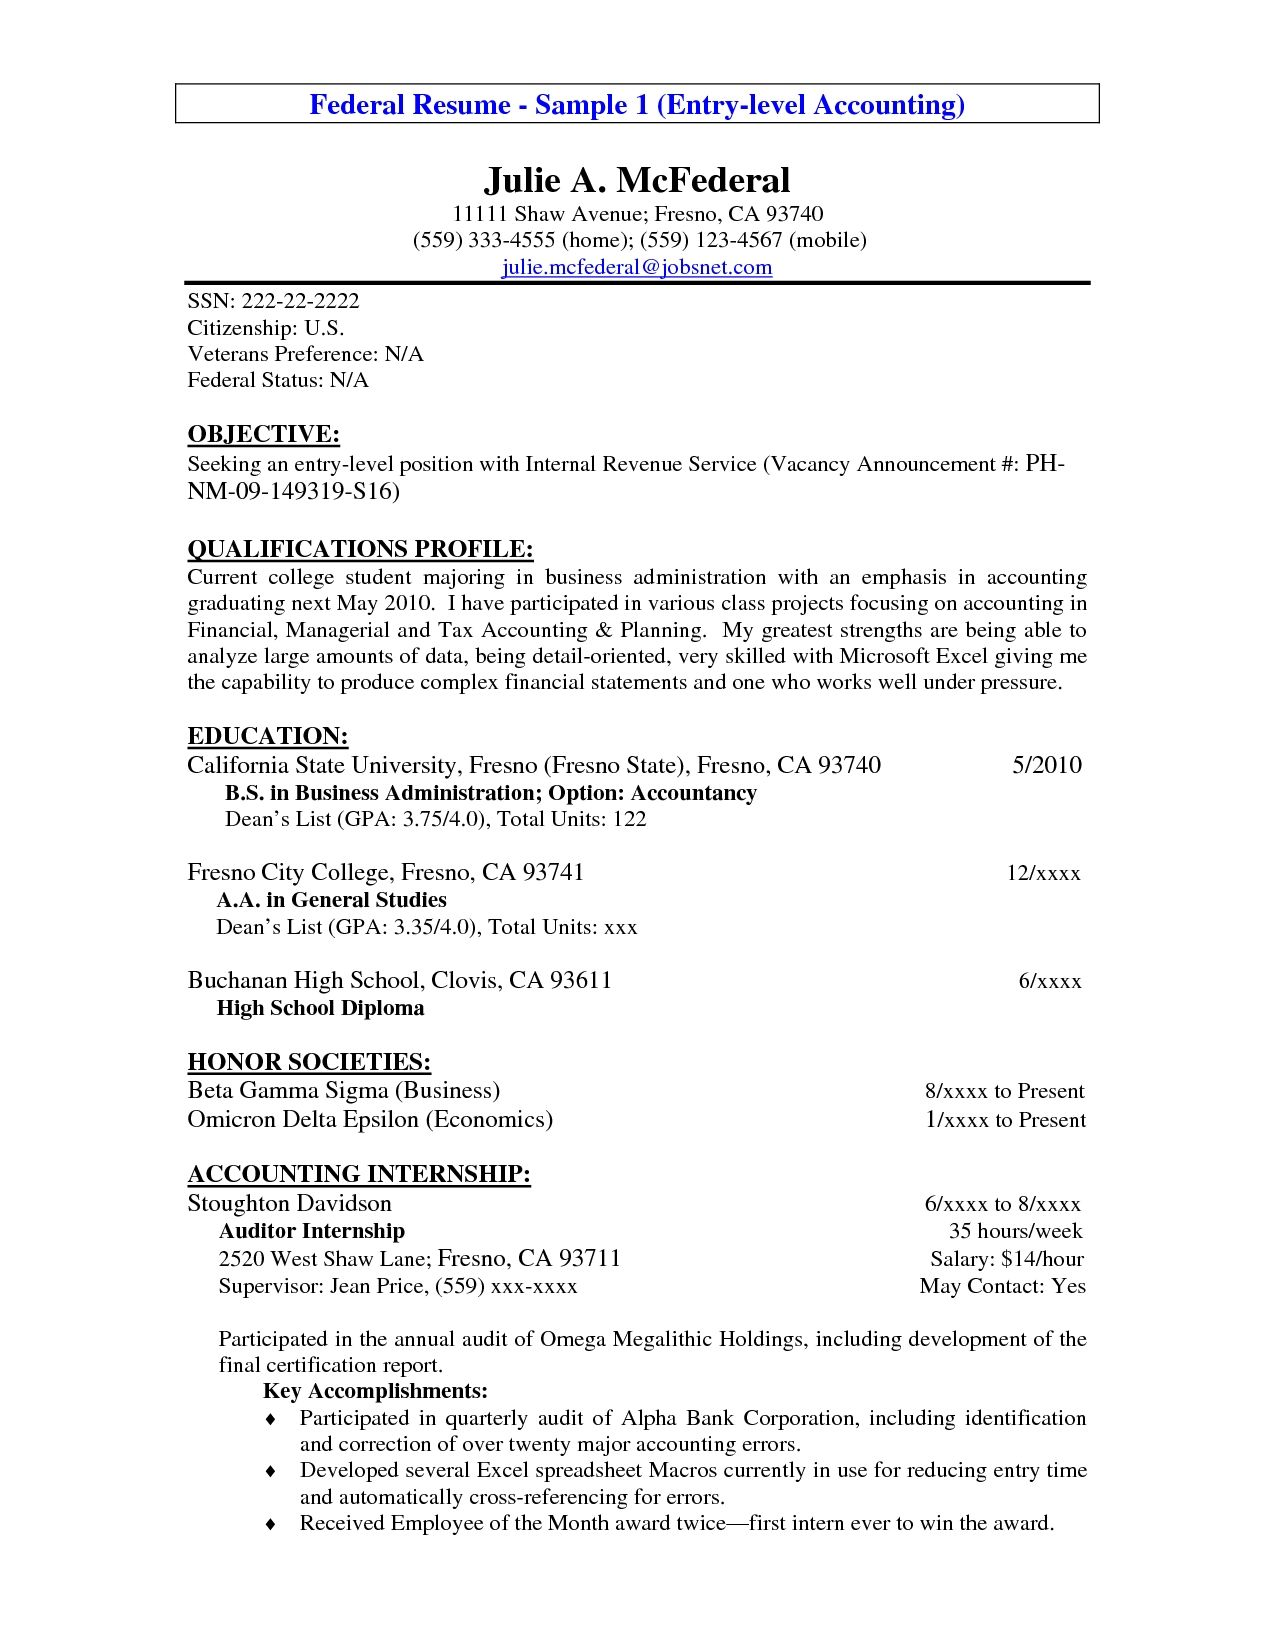 entry level resume example entry level accounting resume sample 4b6c55396be0e1e55c4519cb8c5ab94c 557531628853970129 entry level resumes templates